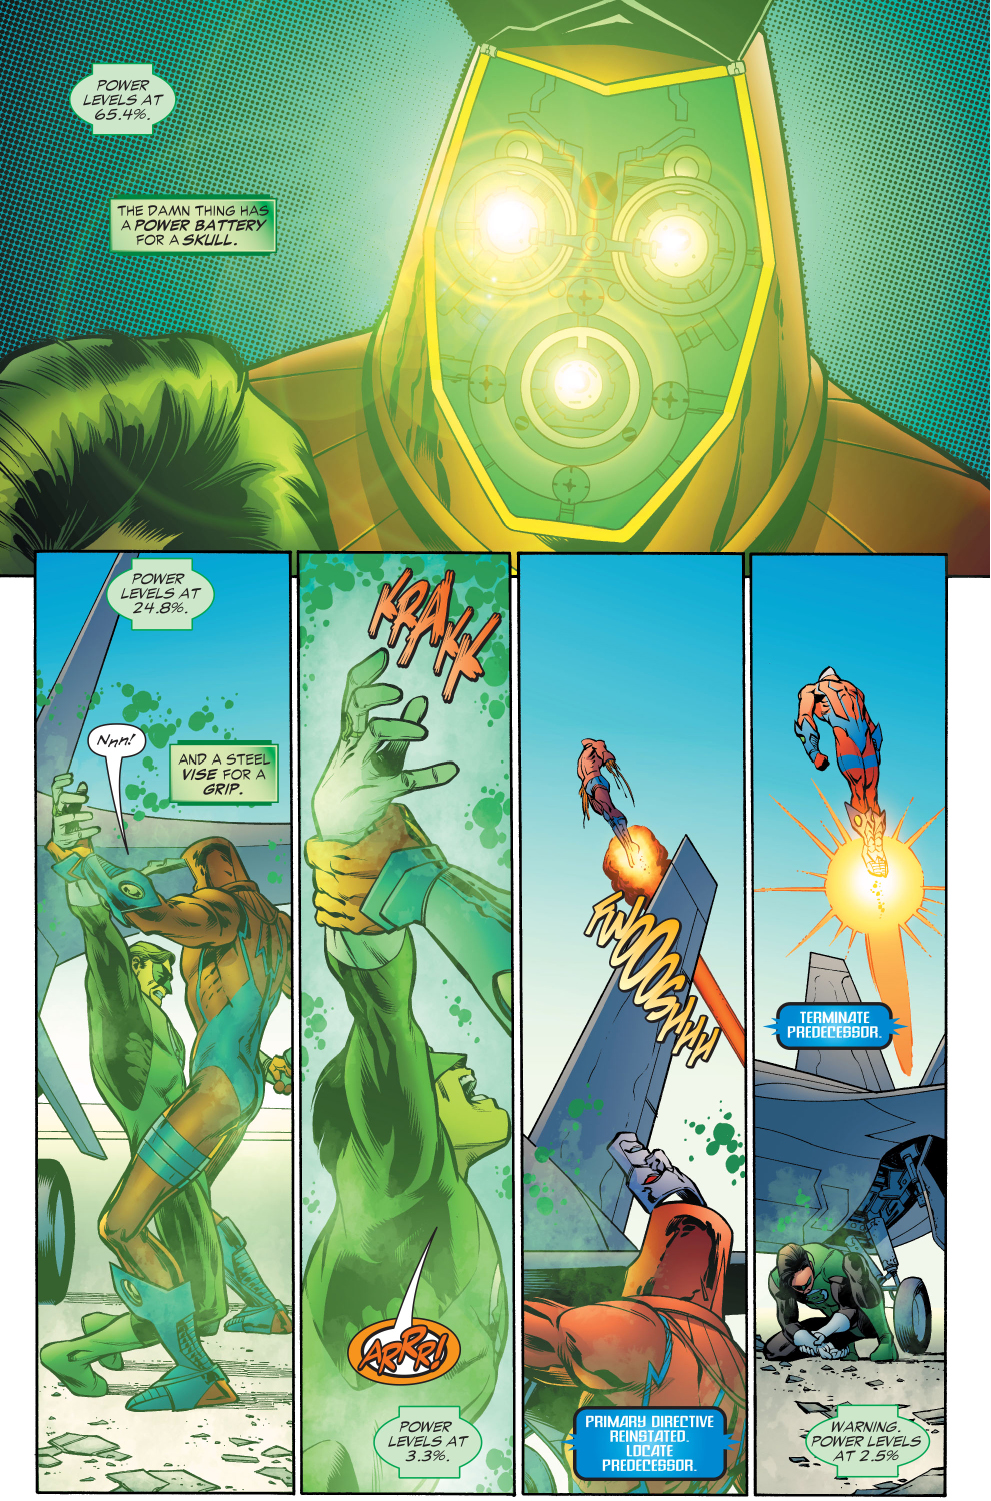 green lantern discovers the secret weapon of a manhunter